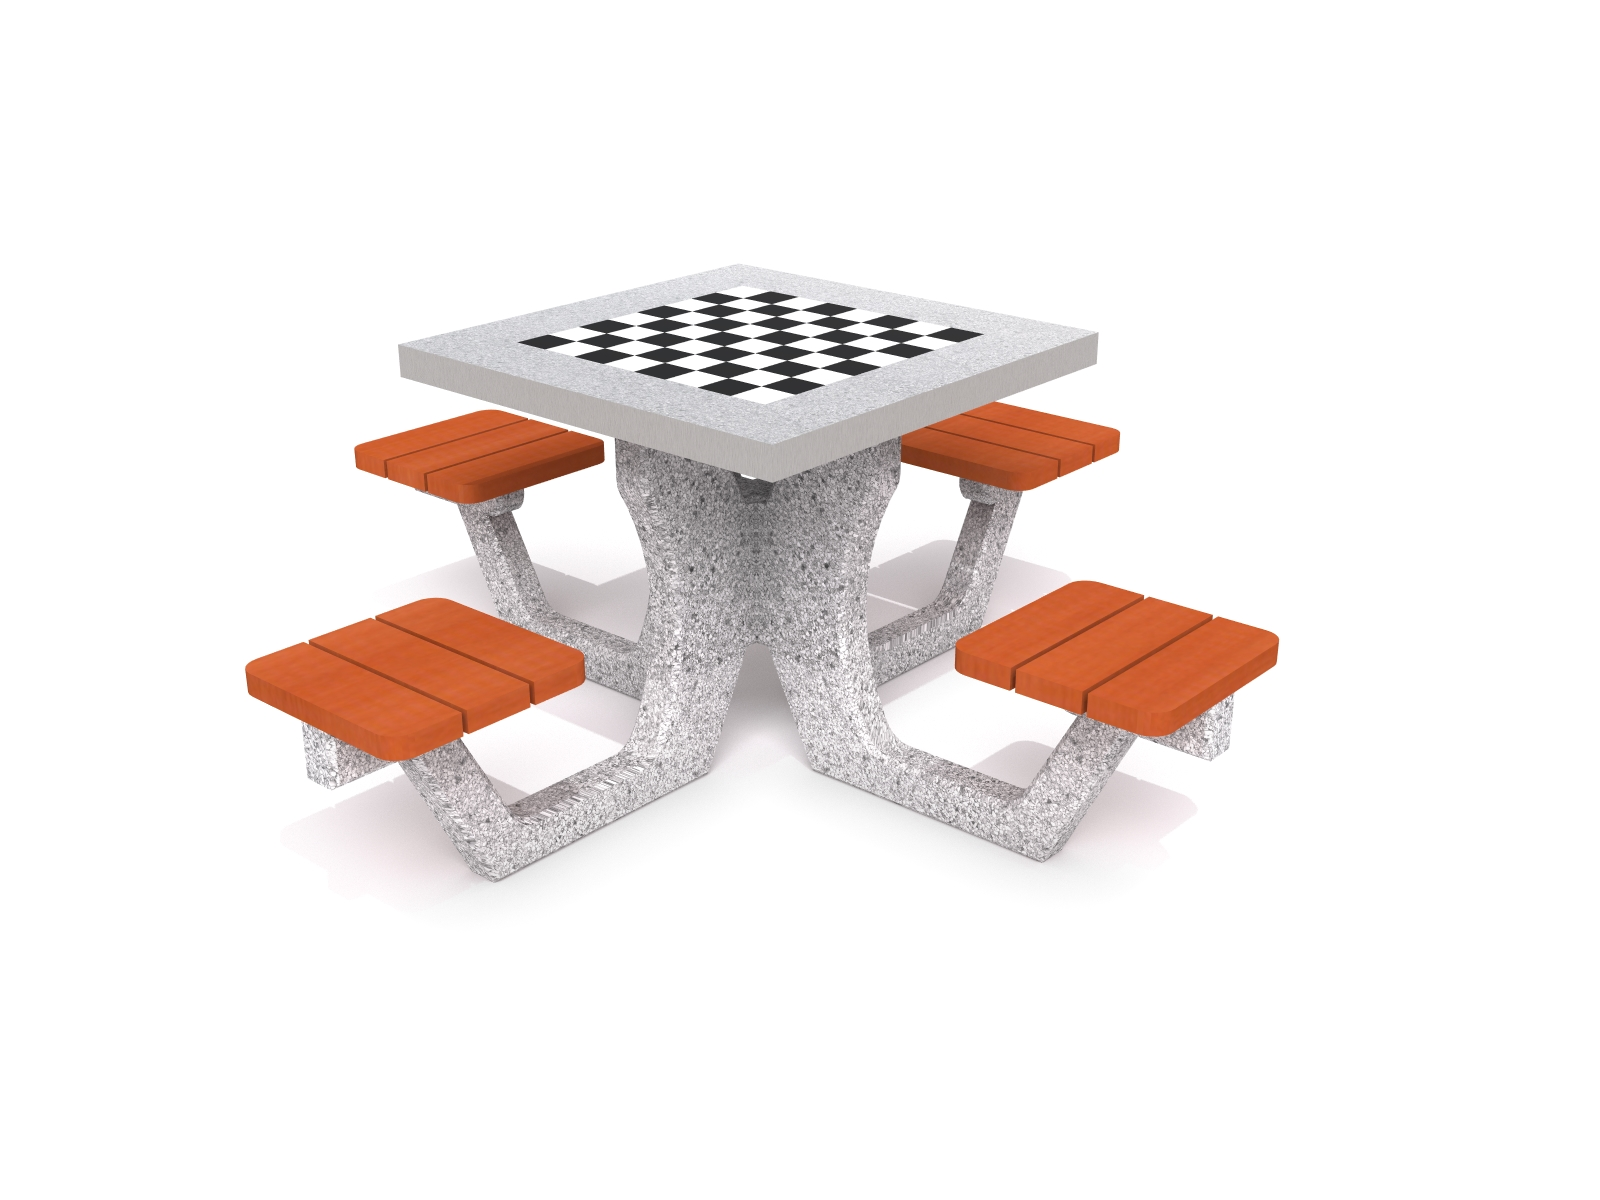 Tables Concrete Table For Chess Checkers 01 Inter Play